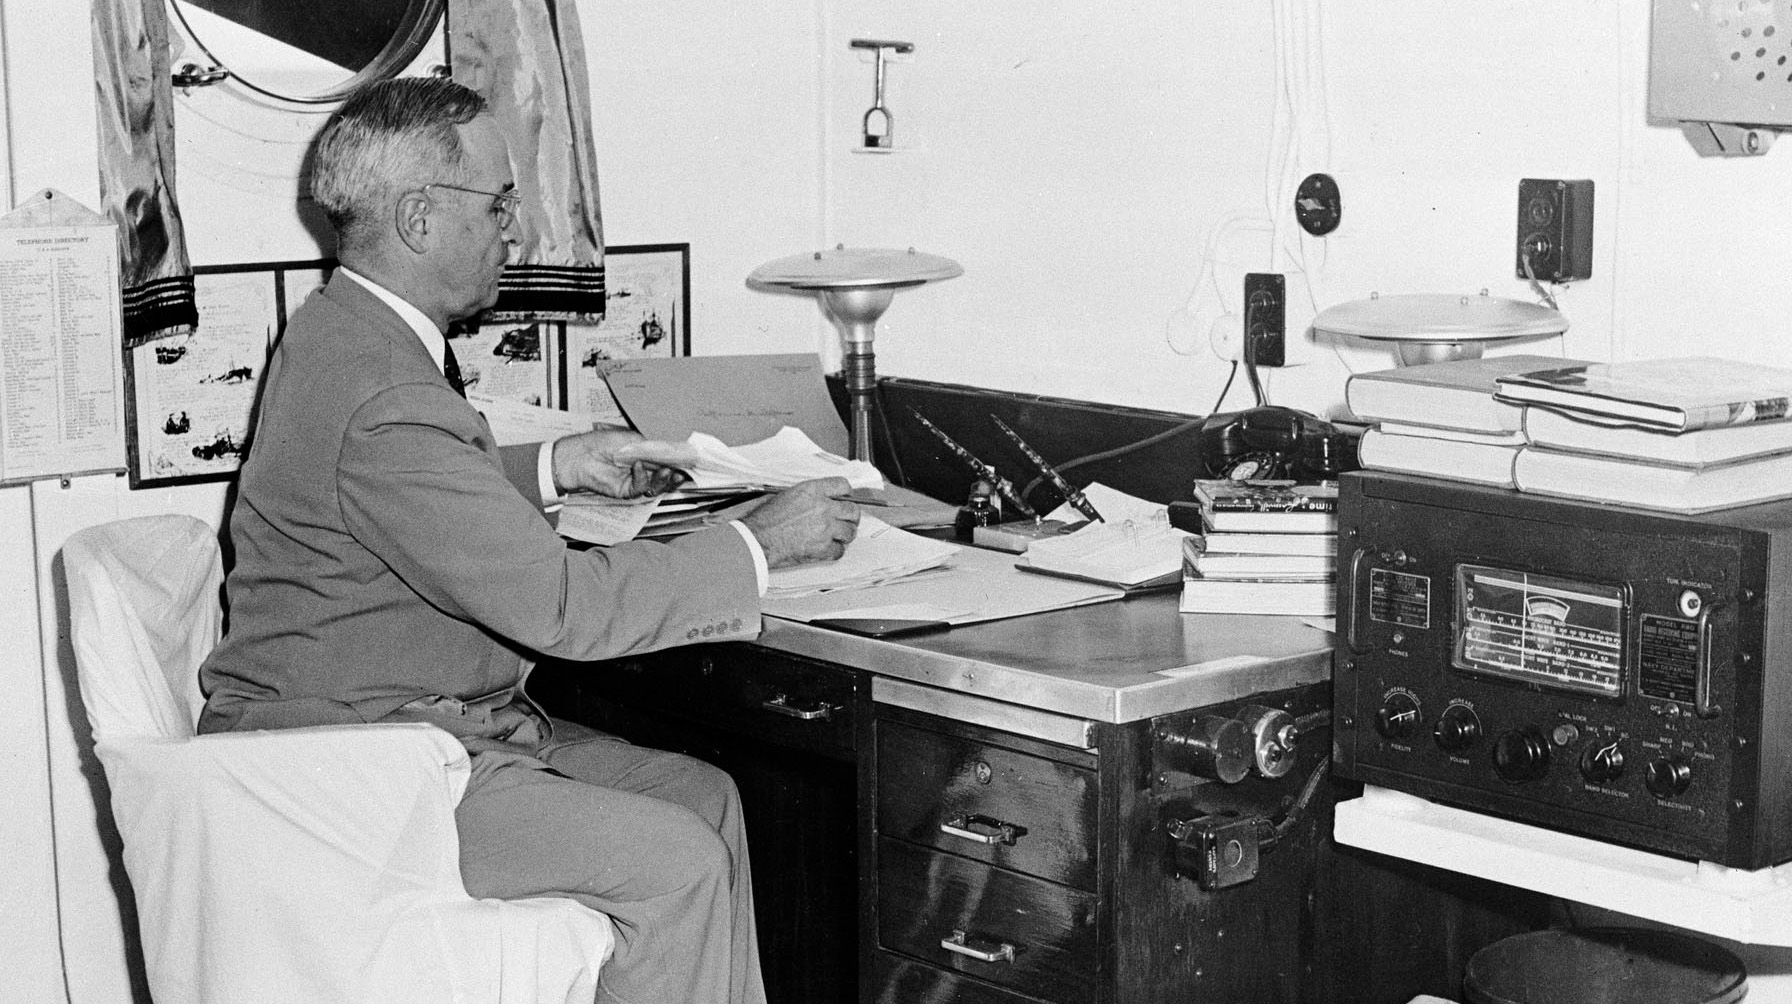 President Harry S. Truman, with a radio at hand, reads reports of the first atomic bomb raid on Japan, while en route home from the Potsdam conference, August 6, 1945. (AP Photo)